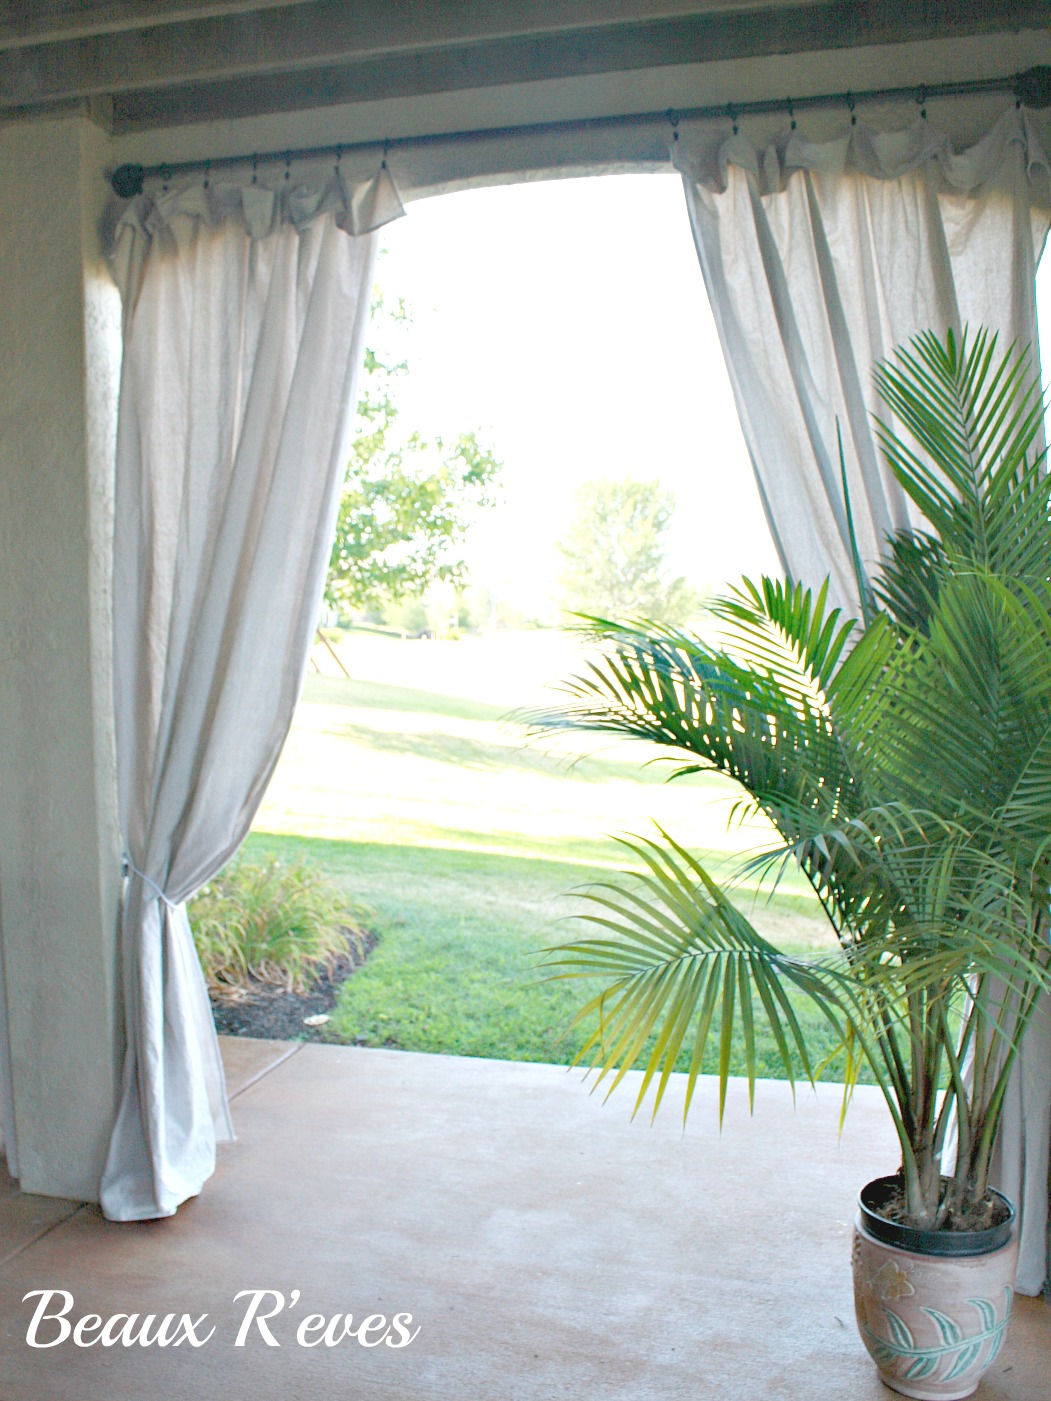 Beaux R eves No Sew Outdoor Curtains